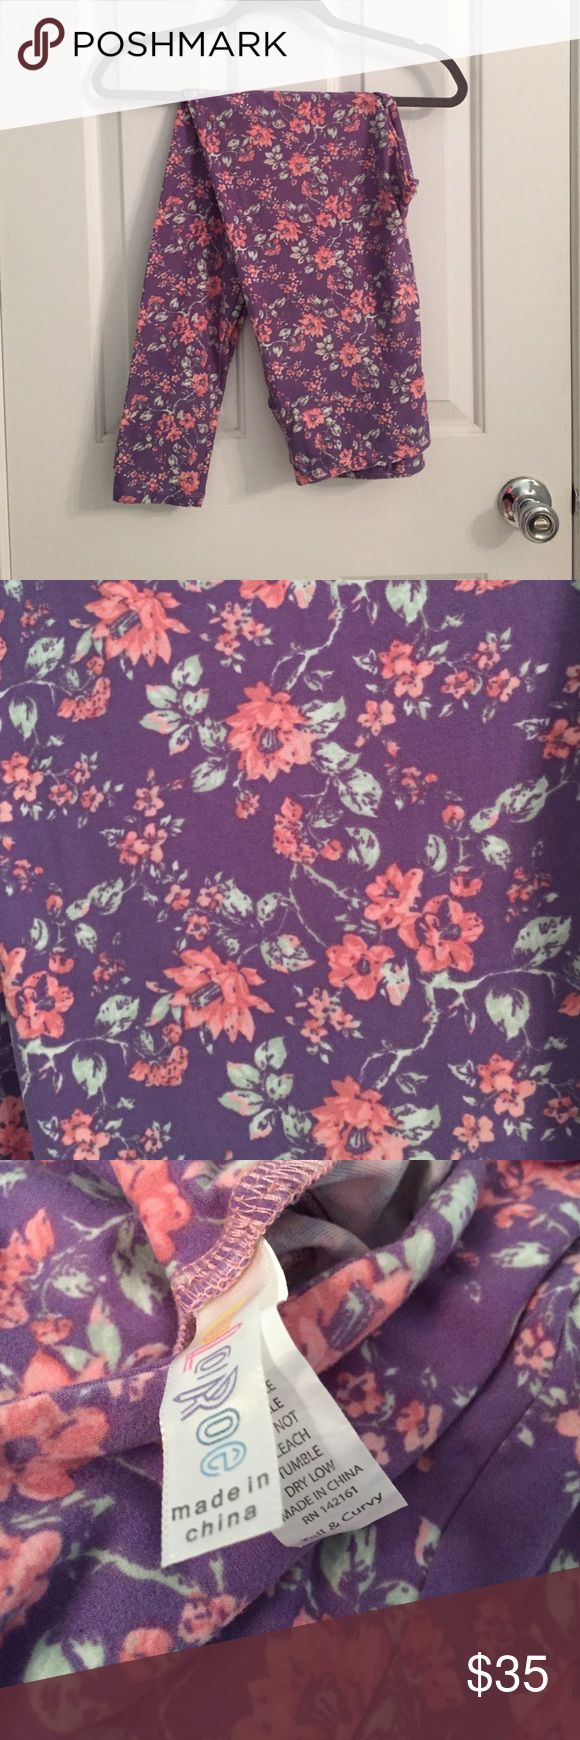 NWT Lularoe TC Leggings NWT Lularoe TC Leggings. Gorgeous pink and green flowers on a purple background. Brand new and buttery soft!! LuLaRoe Pants Leggings